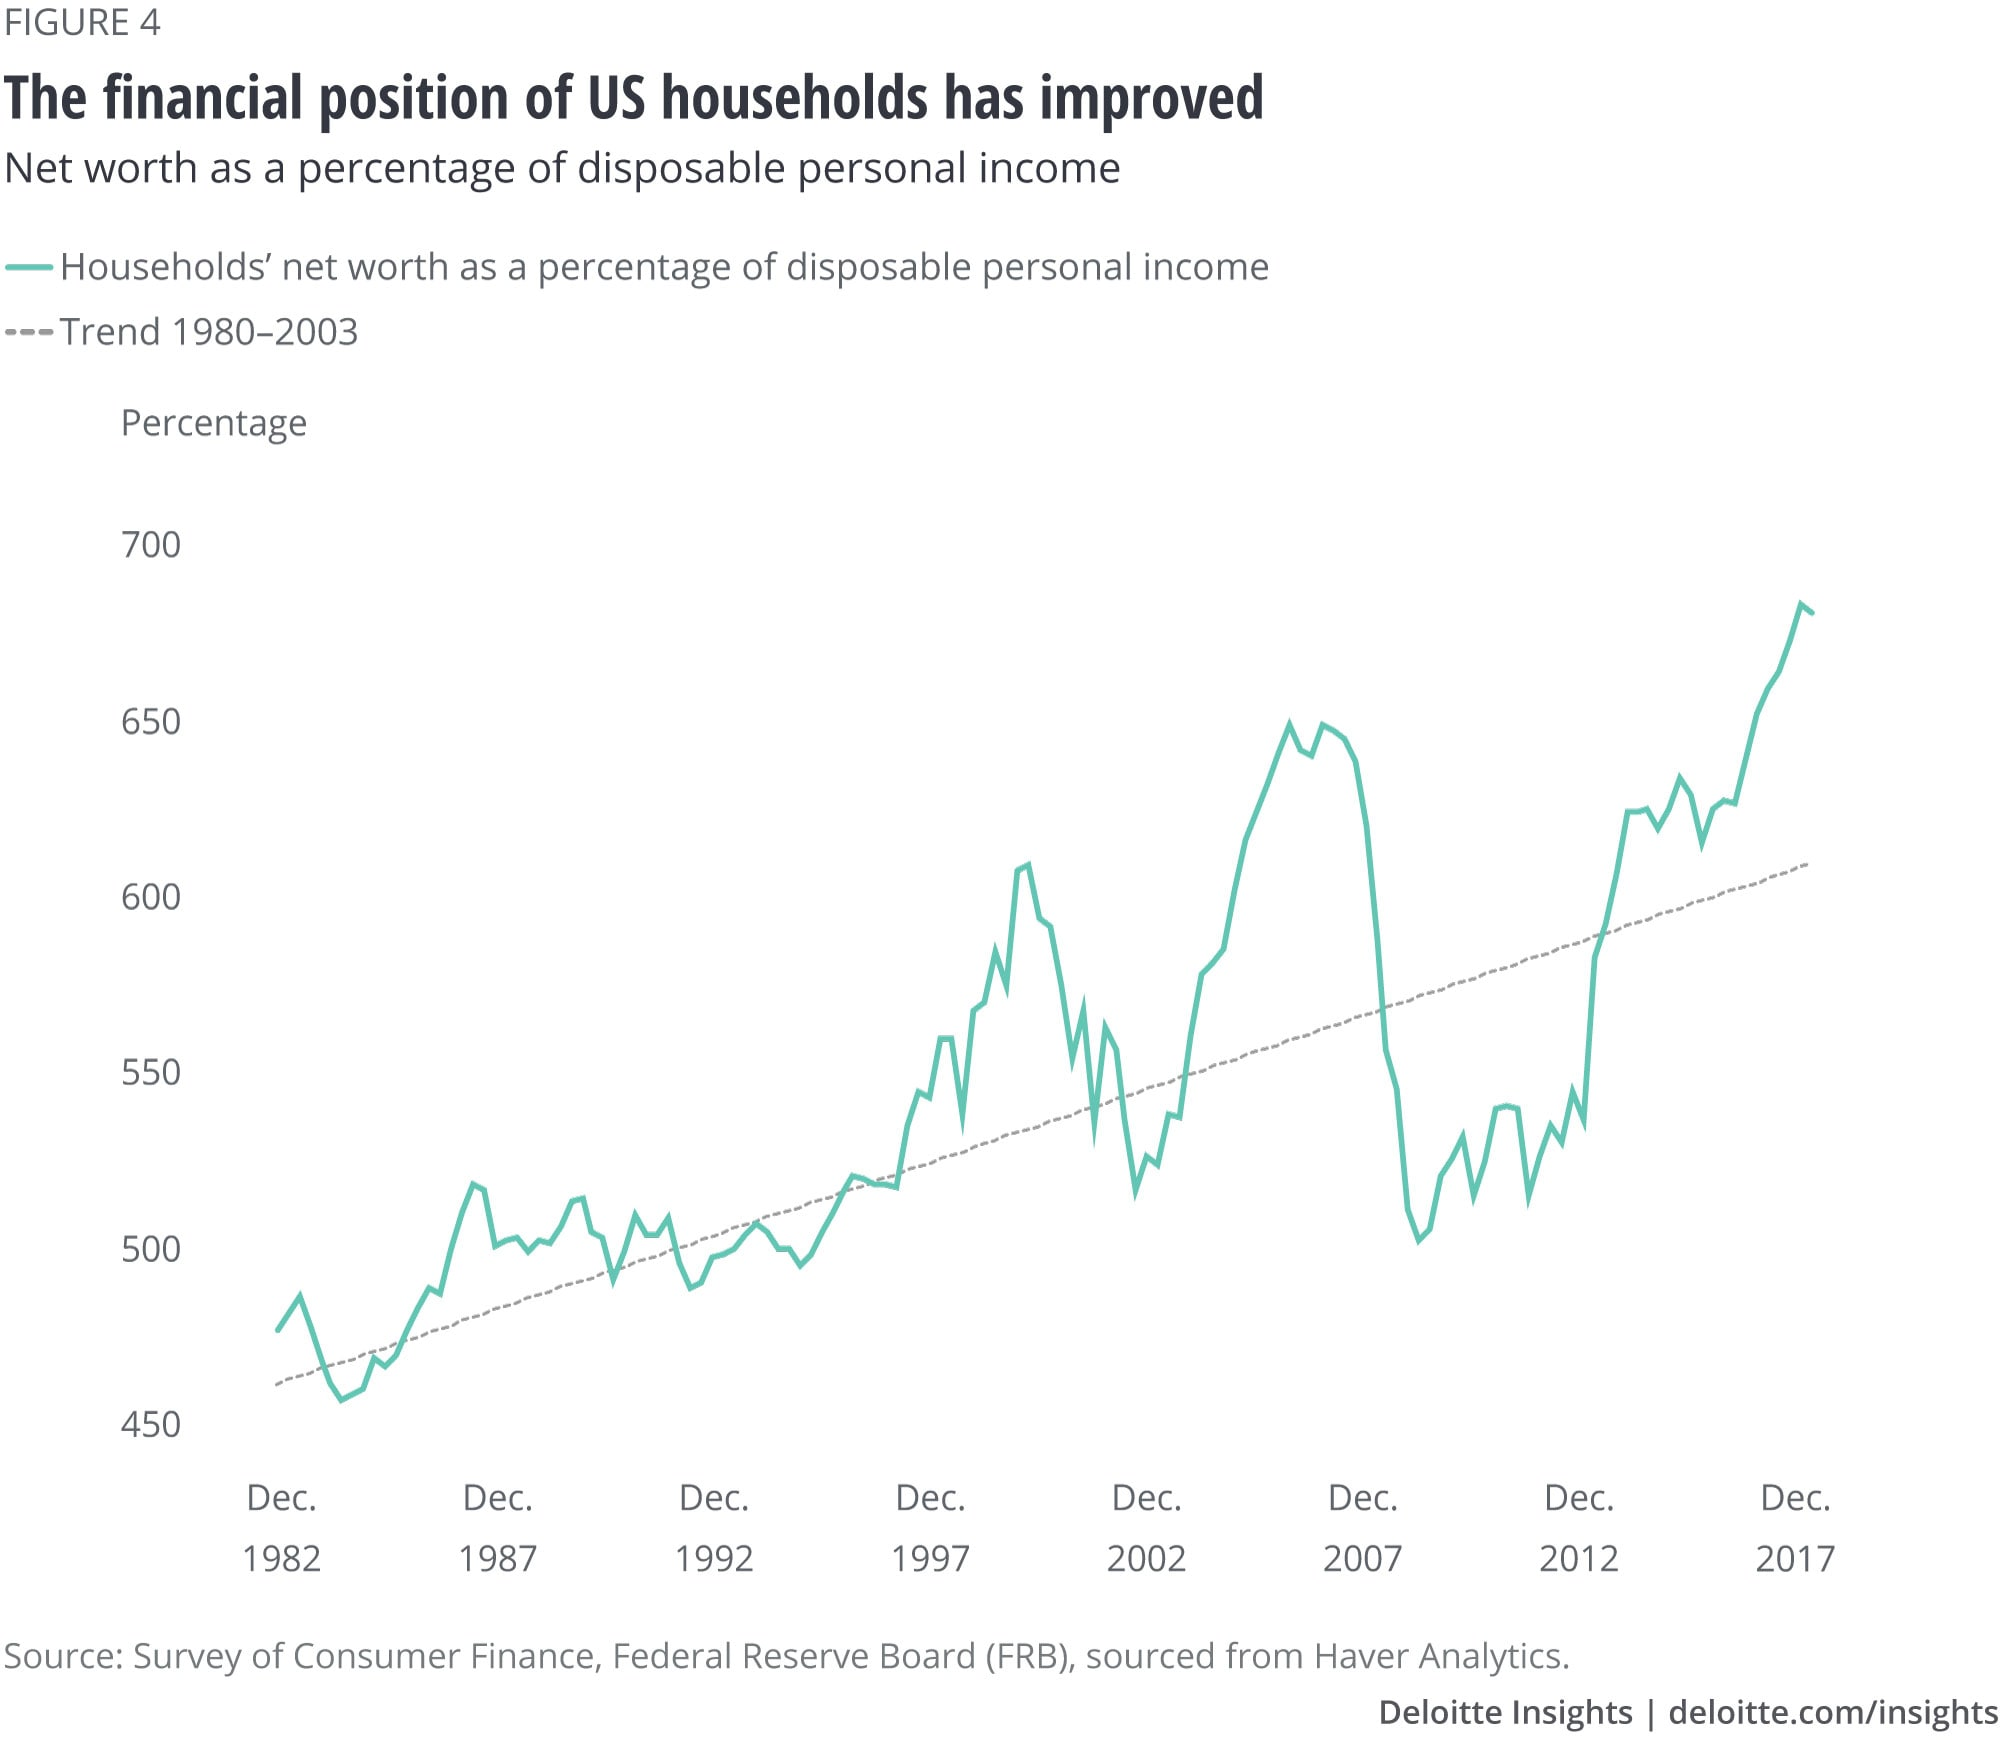 The financial position of US households has improved